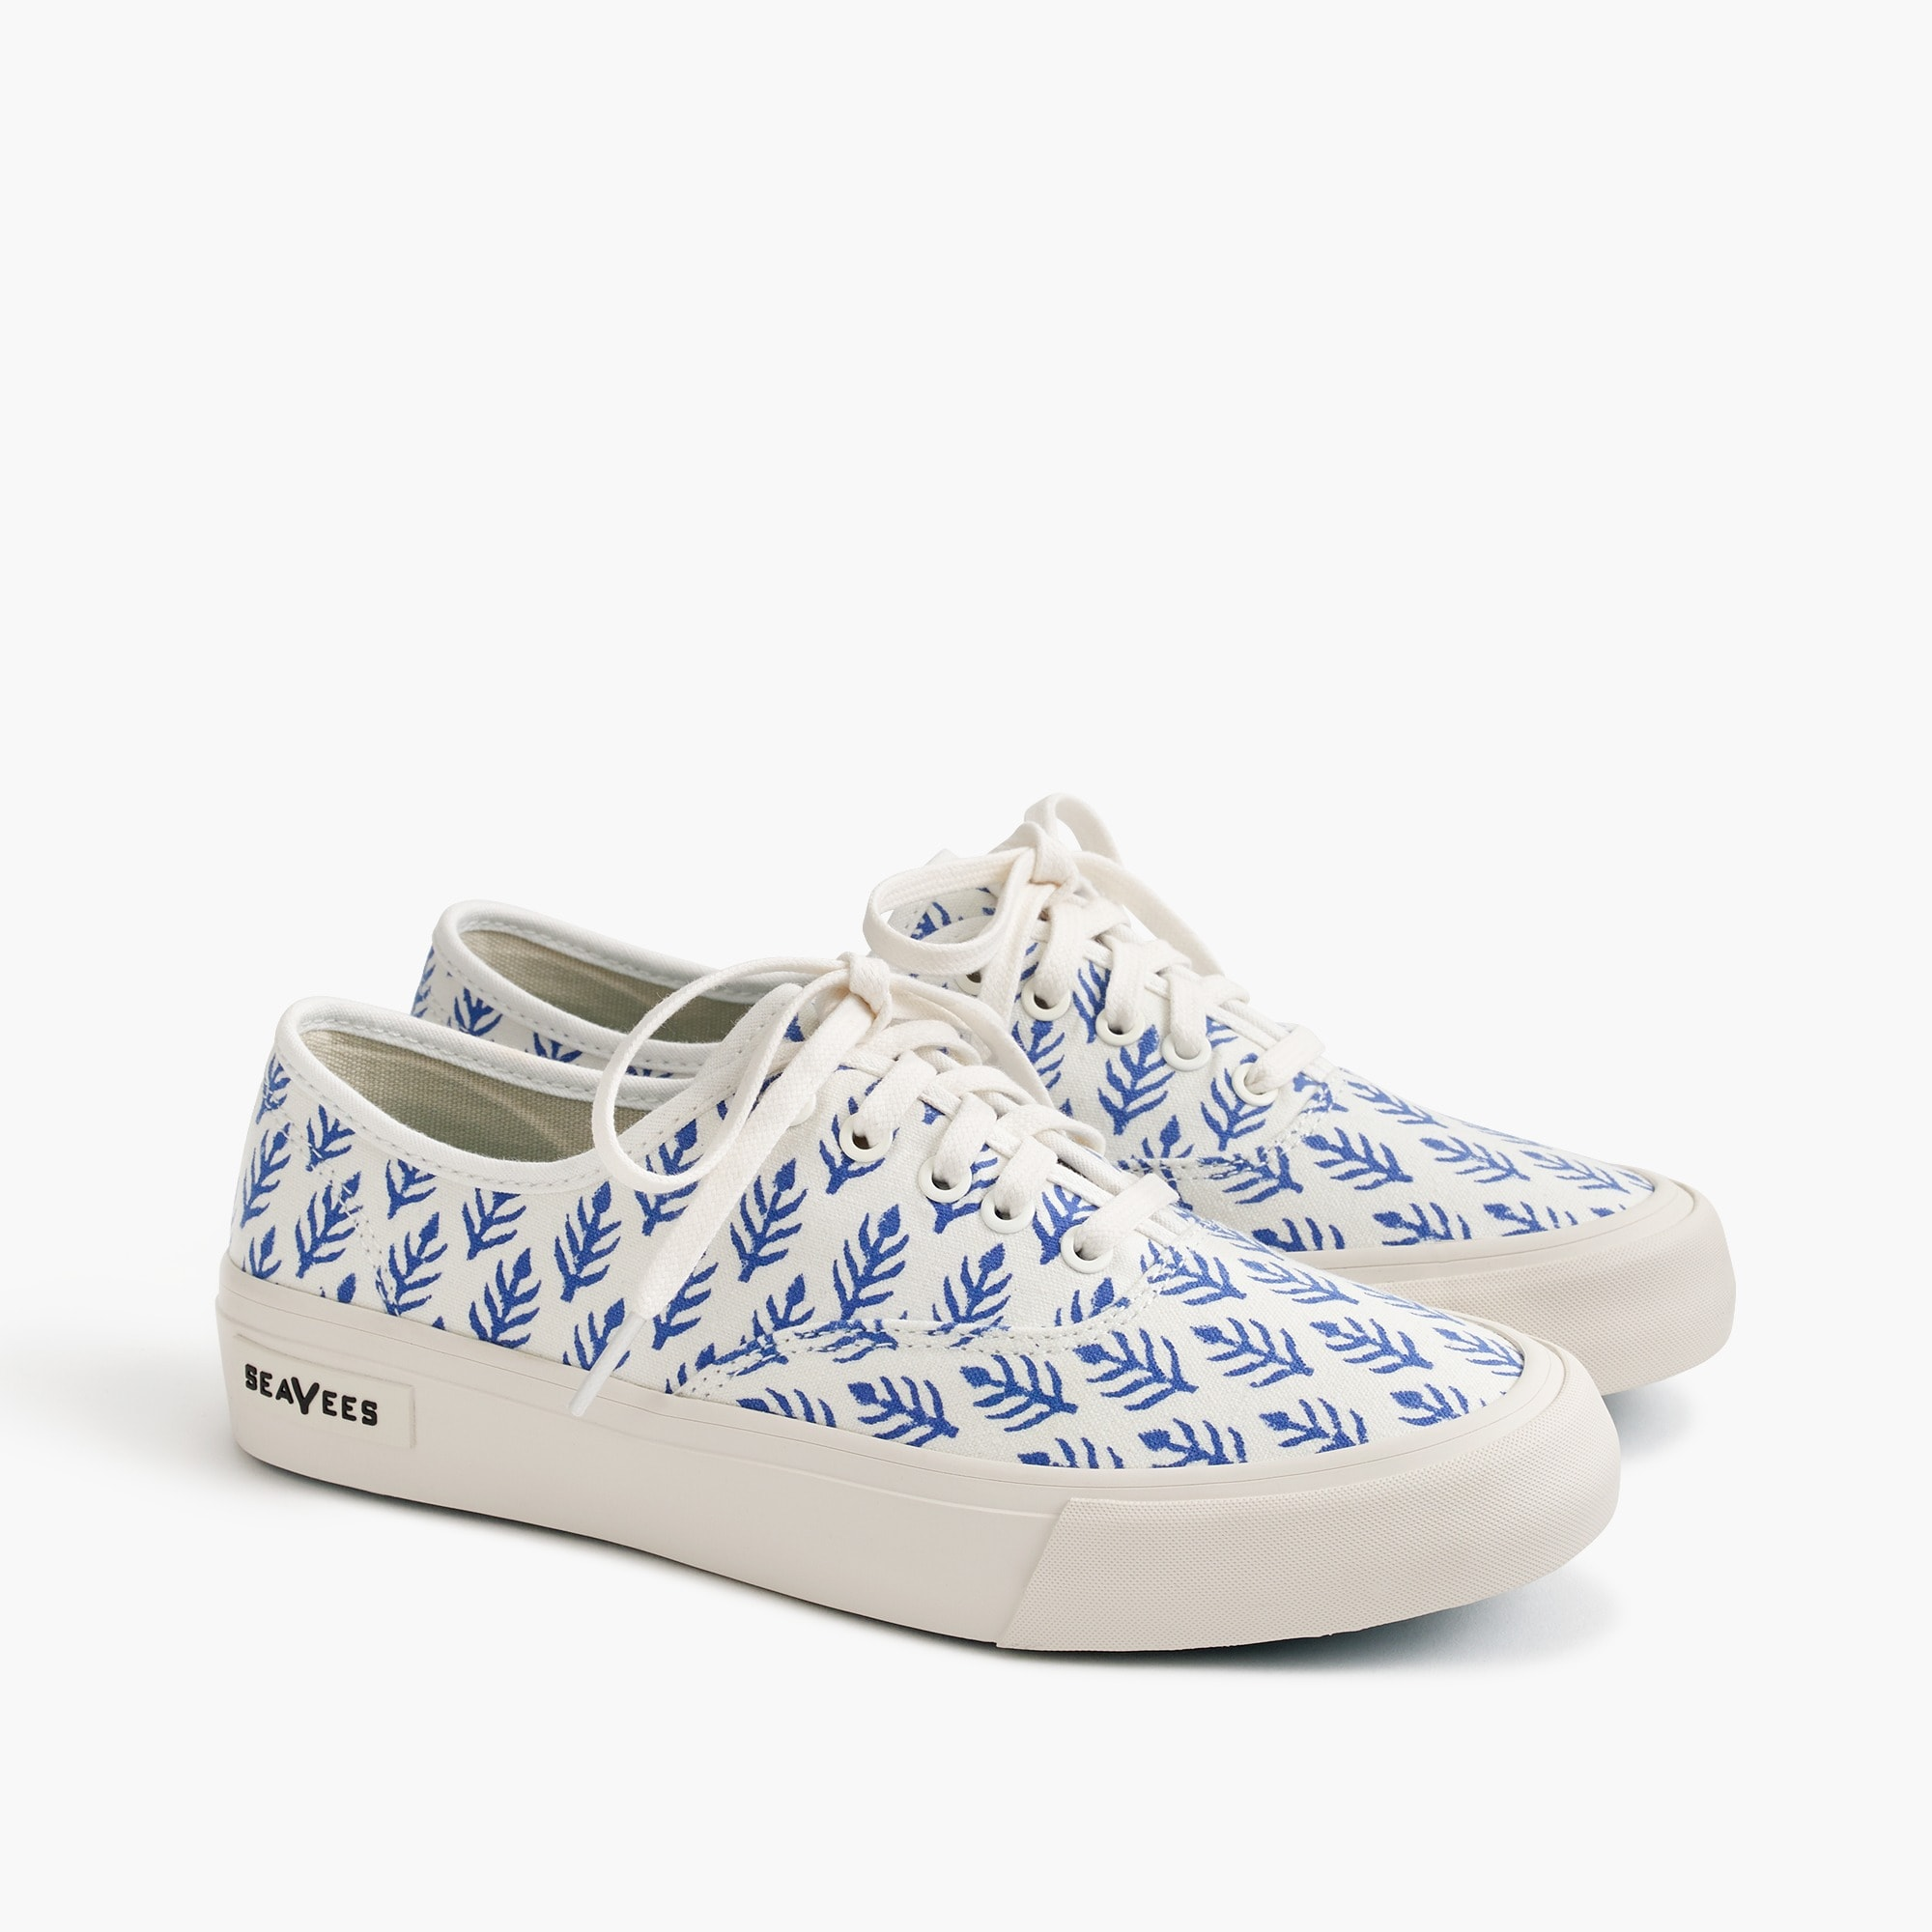 womens SeaVees® for J.Crew Legend sneakers in SZ Blockprints™ blue leaves